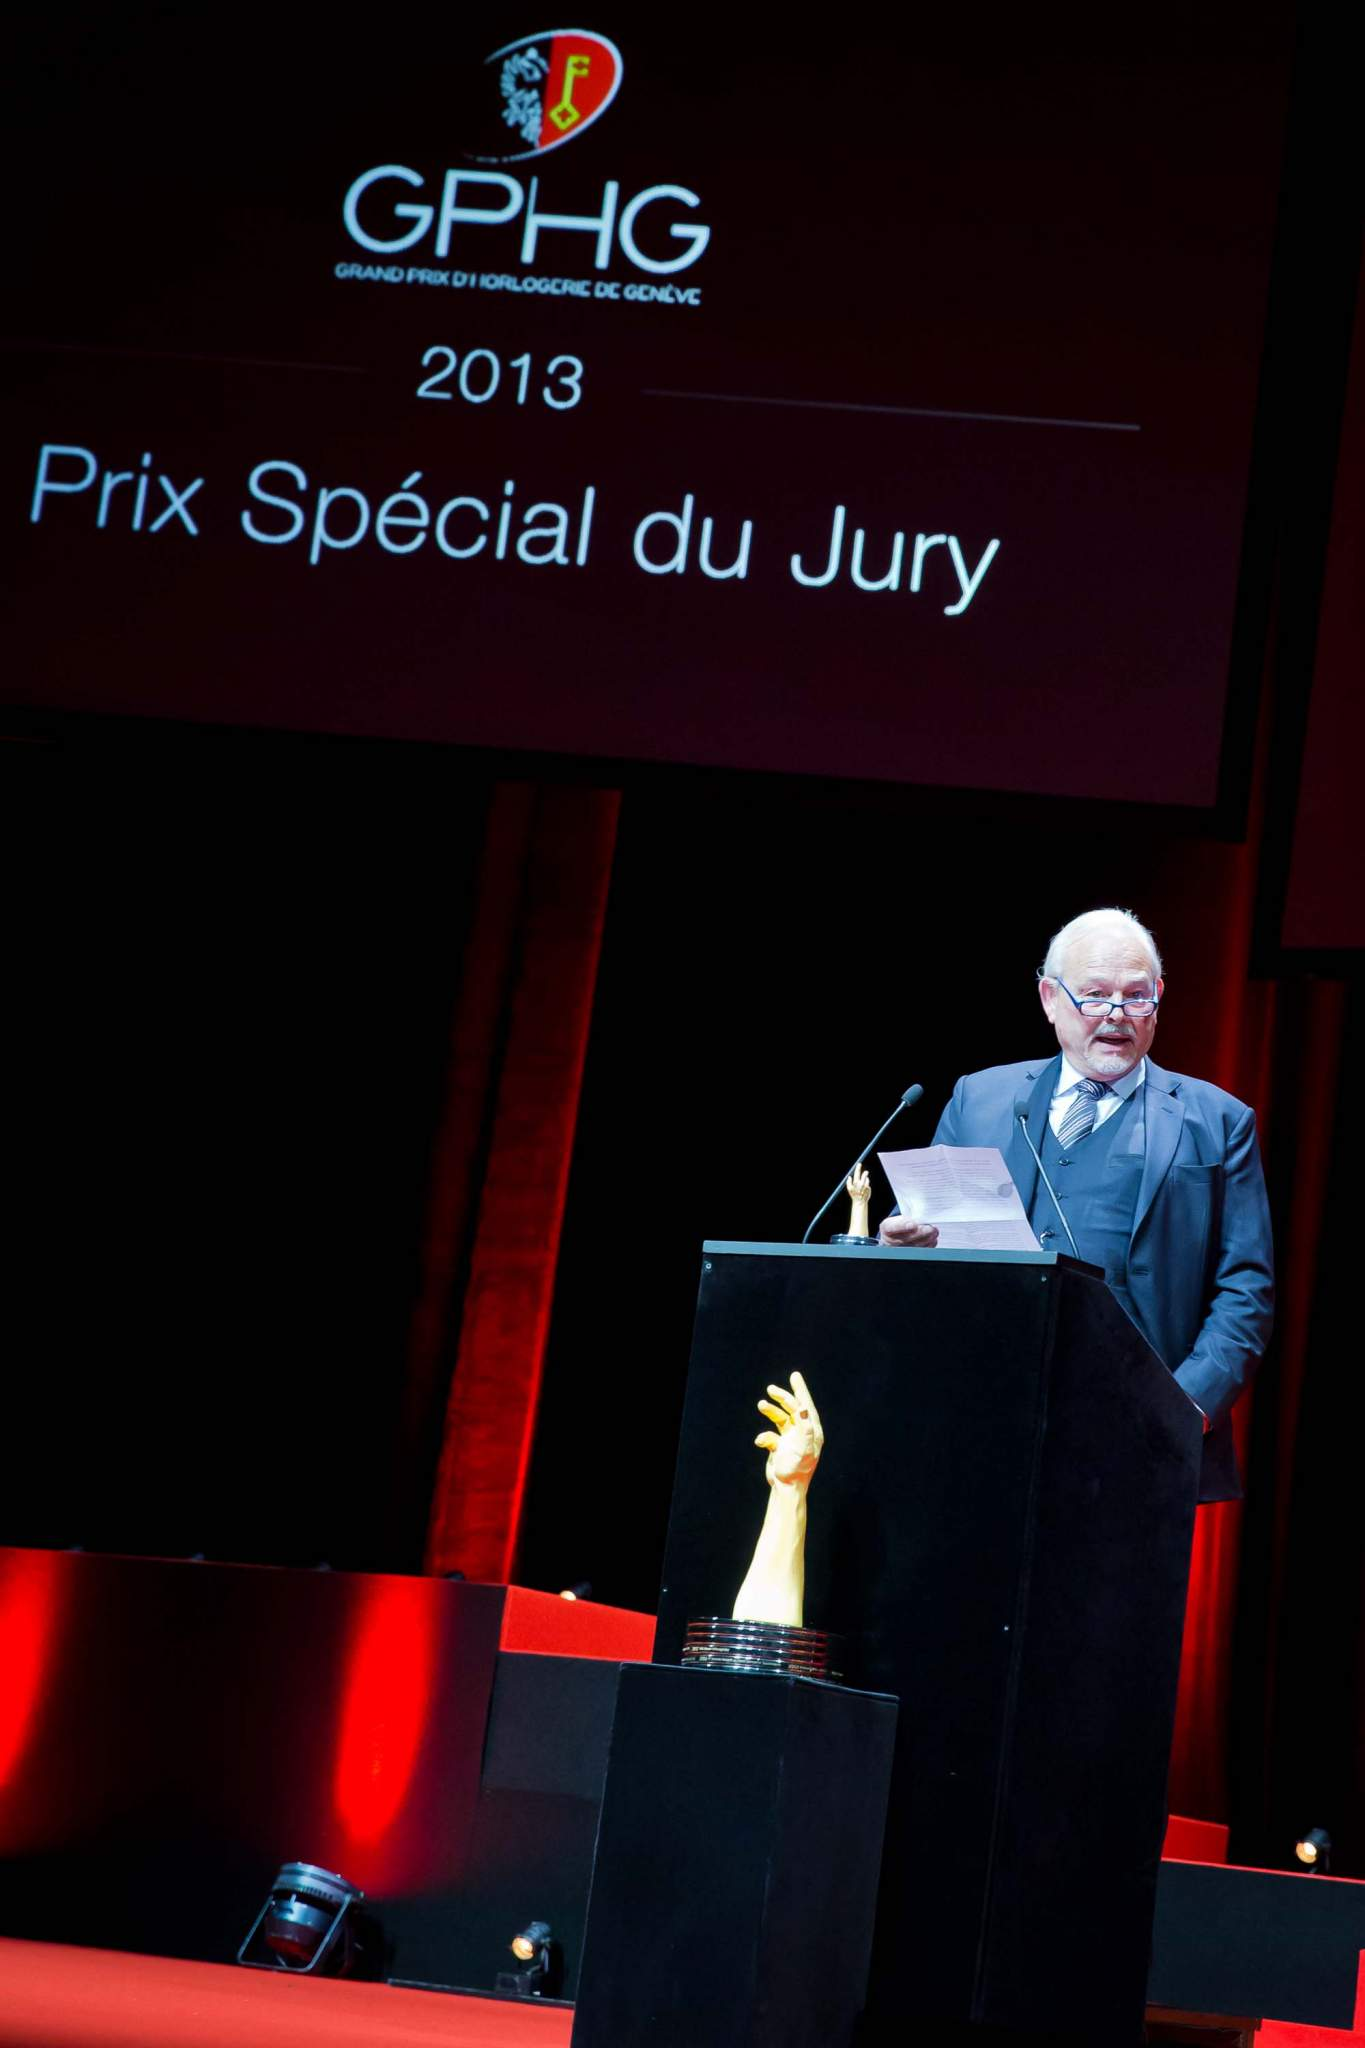 Speech of Philippe Dufour, winner of the Special Jury Prize 2013